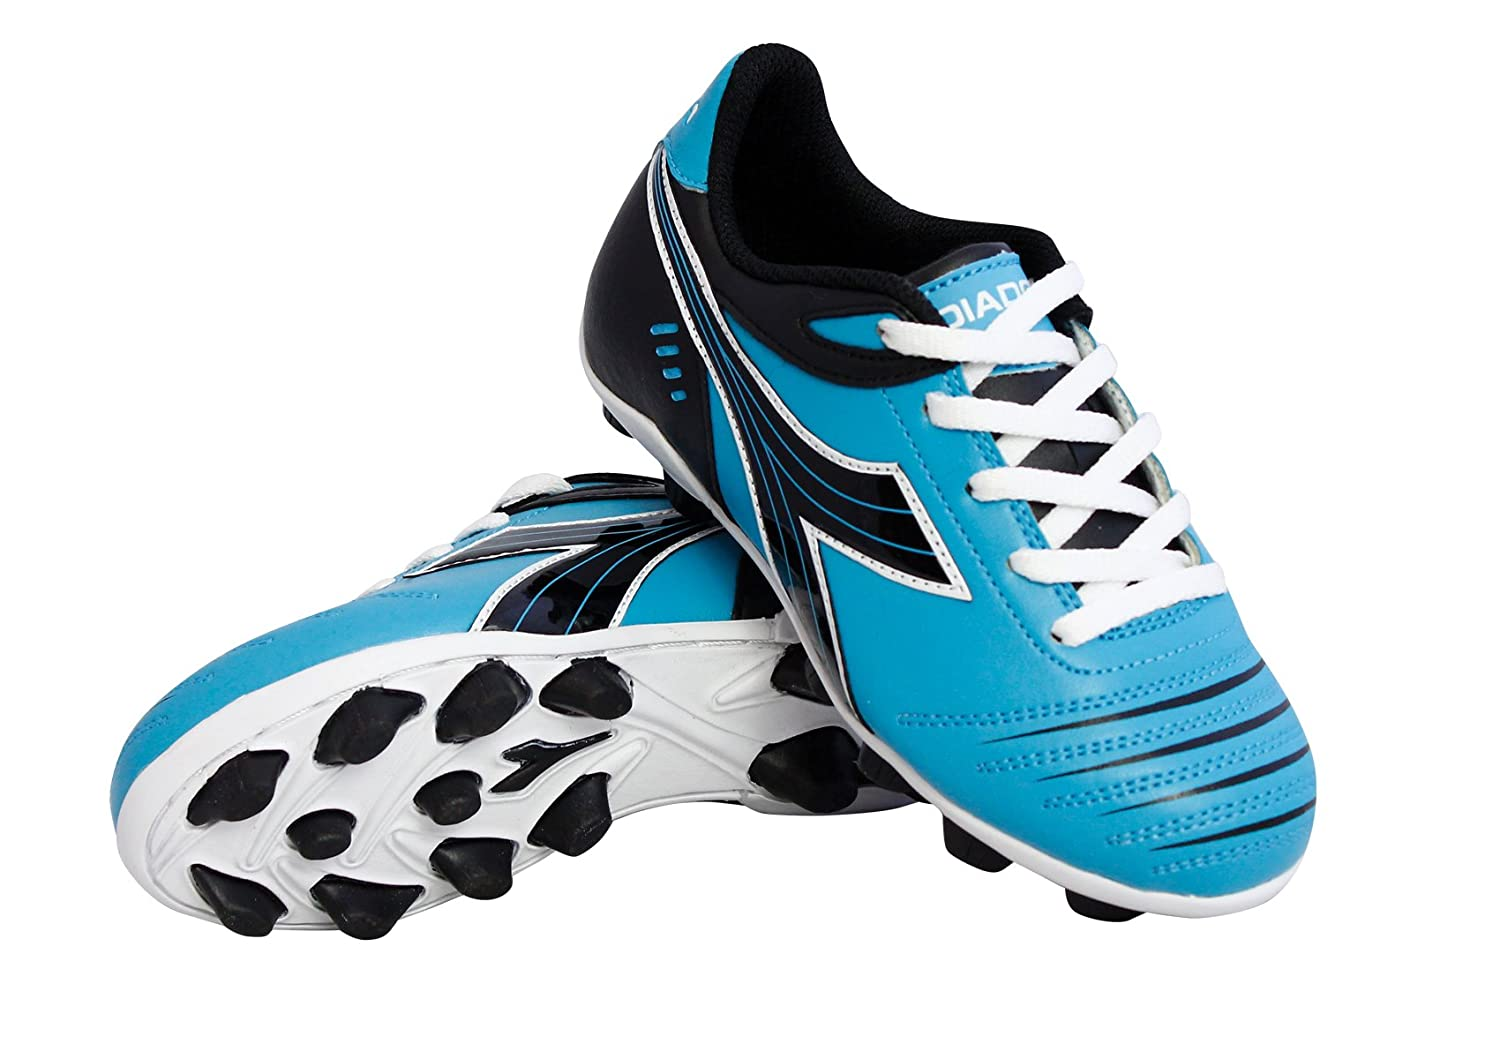 6e672f205a19 Diadora Kid's Cattura MD Jr Soccer Cleats (5.5 M US Big Kid, Columbia  Blue/Black): Buy Online at Low Prices in India - Amazon.in